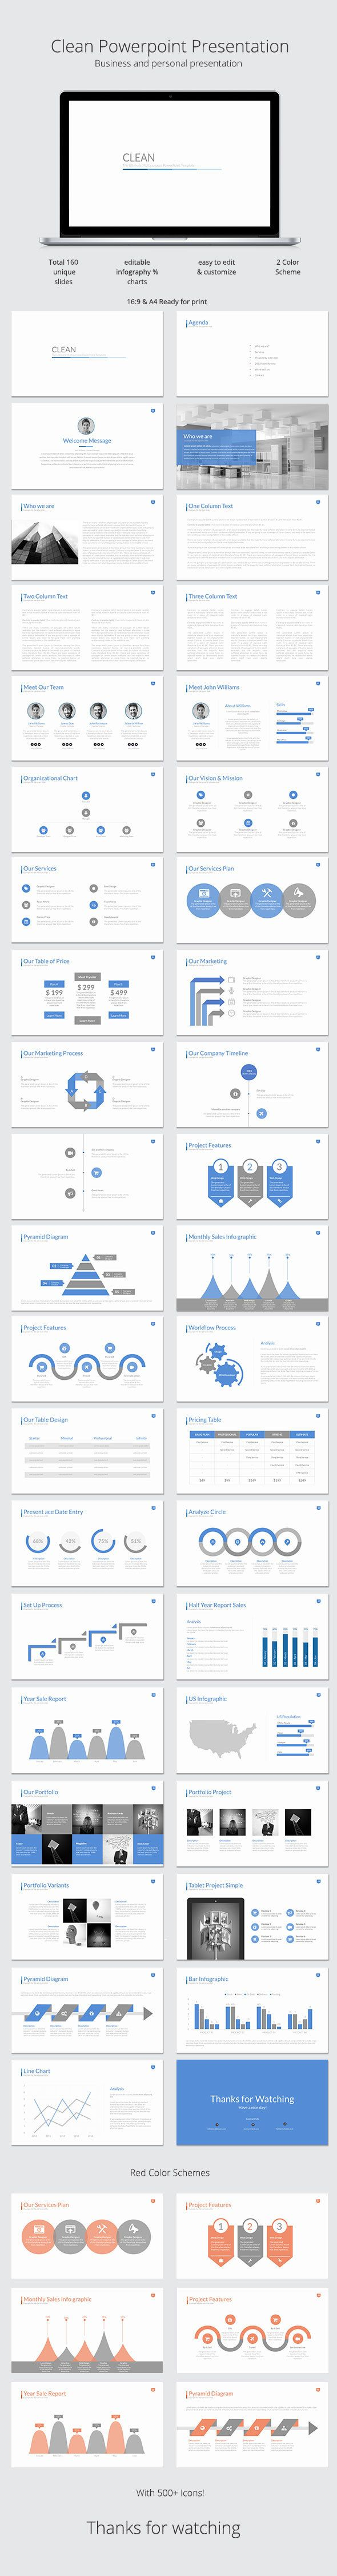 Usdgus  Nice  Ideas About Presentation On Pinterest  Presentation  With Excellent Clean Powerpoint Presentation Template Design Slides Download Httpgraphicriver With Cute Action Buttons Powerpoint Also Operational Terms And Graphics Powerpoint In Addition Free Customer Service Training Powerpoint And Cause And Effect Powerpoint Th Grade As Well As How To Do A Prezi Powerpoint Additionally Army Powerpoint Backgrounds From Pinterestcom With Usdgus  Excellent  Ideas About Presentation On Pinterest  Presentation  With Cute Clean Powerpoint Presentation Template Design Slides Download Httpgraphicriver And Nice Action Buttons Powerpoint Also Operational Terms And Graphics Powerpoint In Addition Free Customer Service Training Powerpoint From Pinterestcom